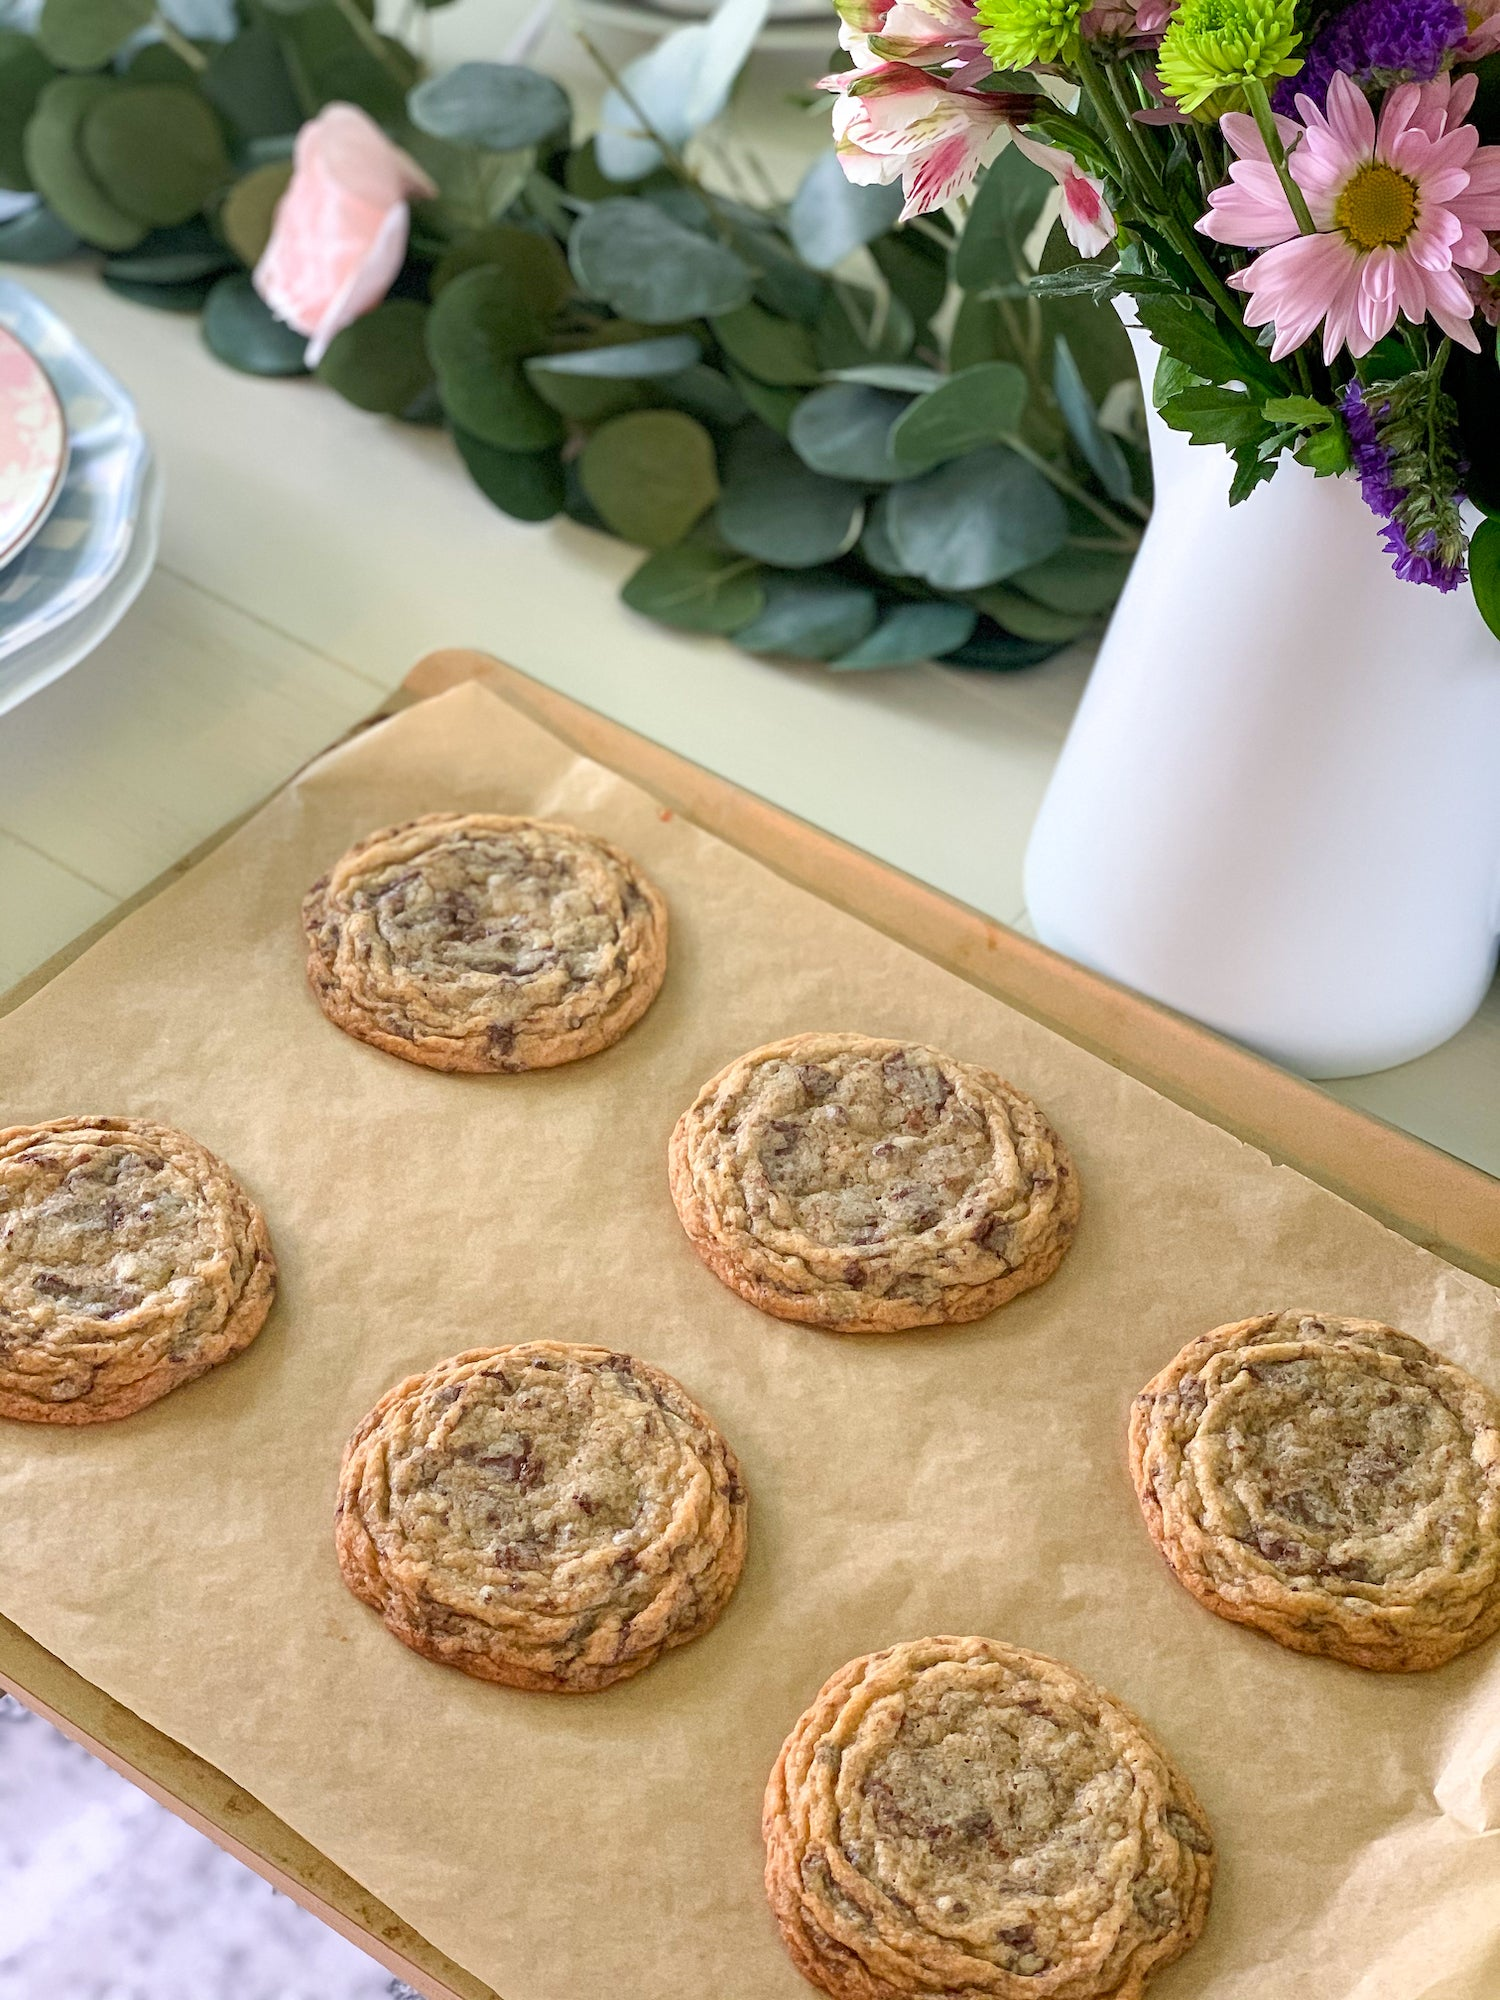 Chocolate chic oatmeal cookie recipe